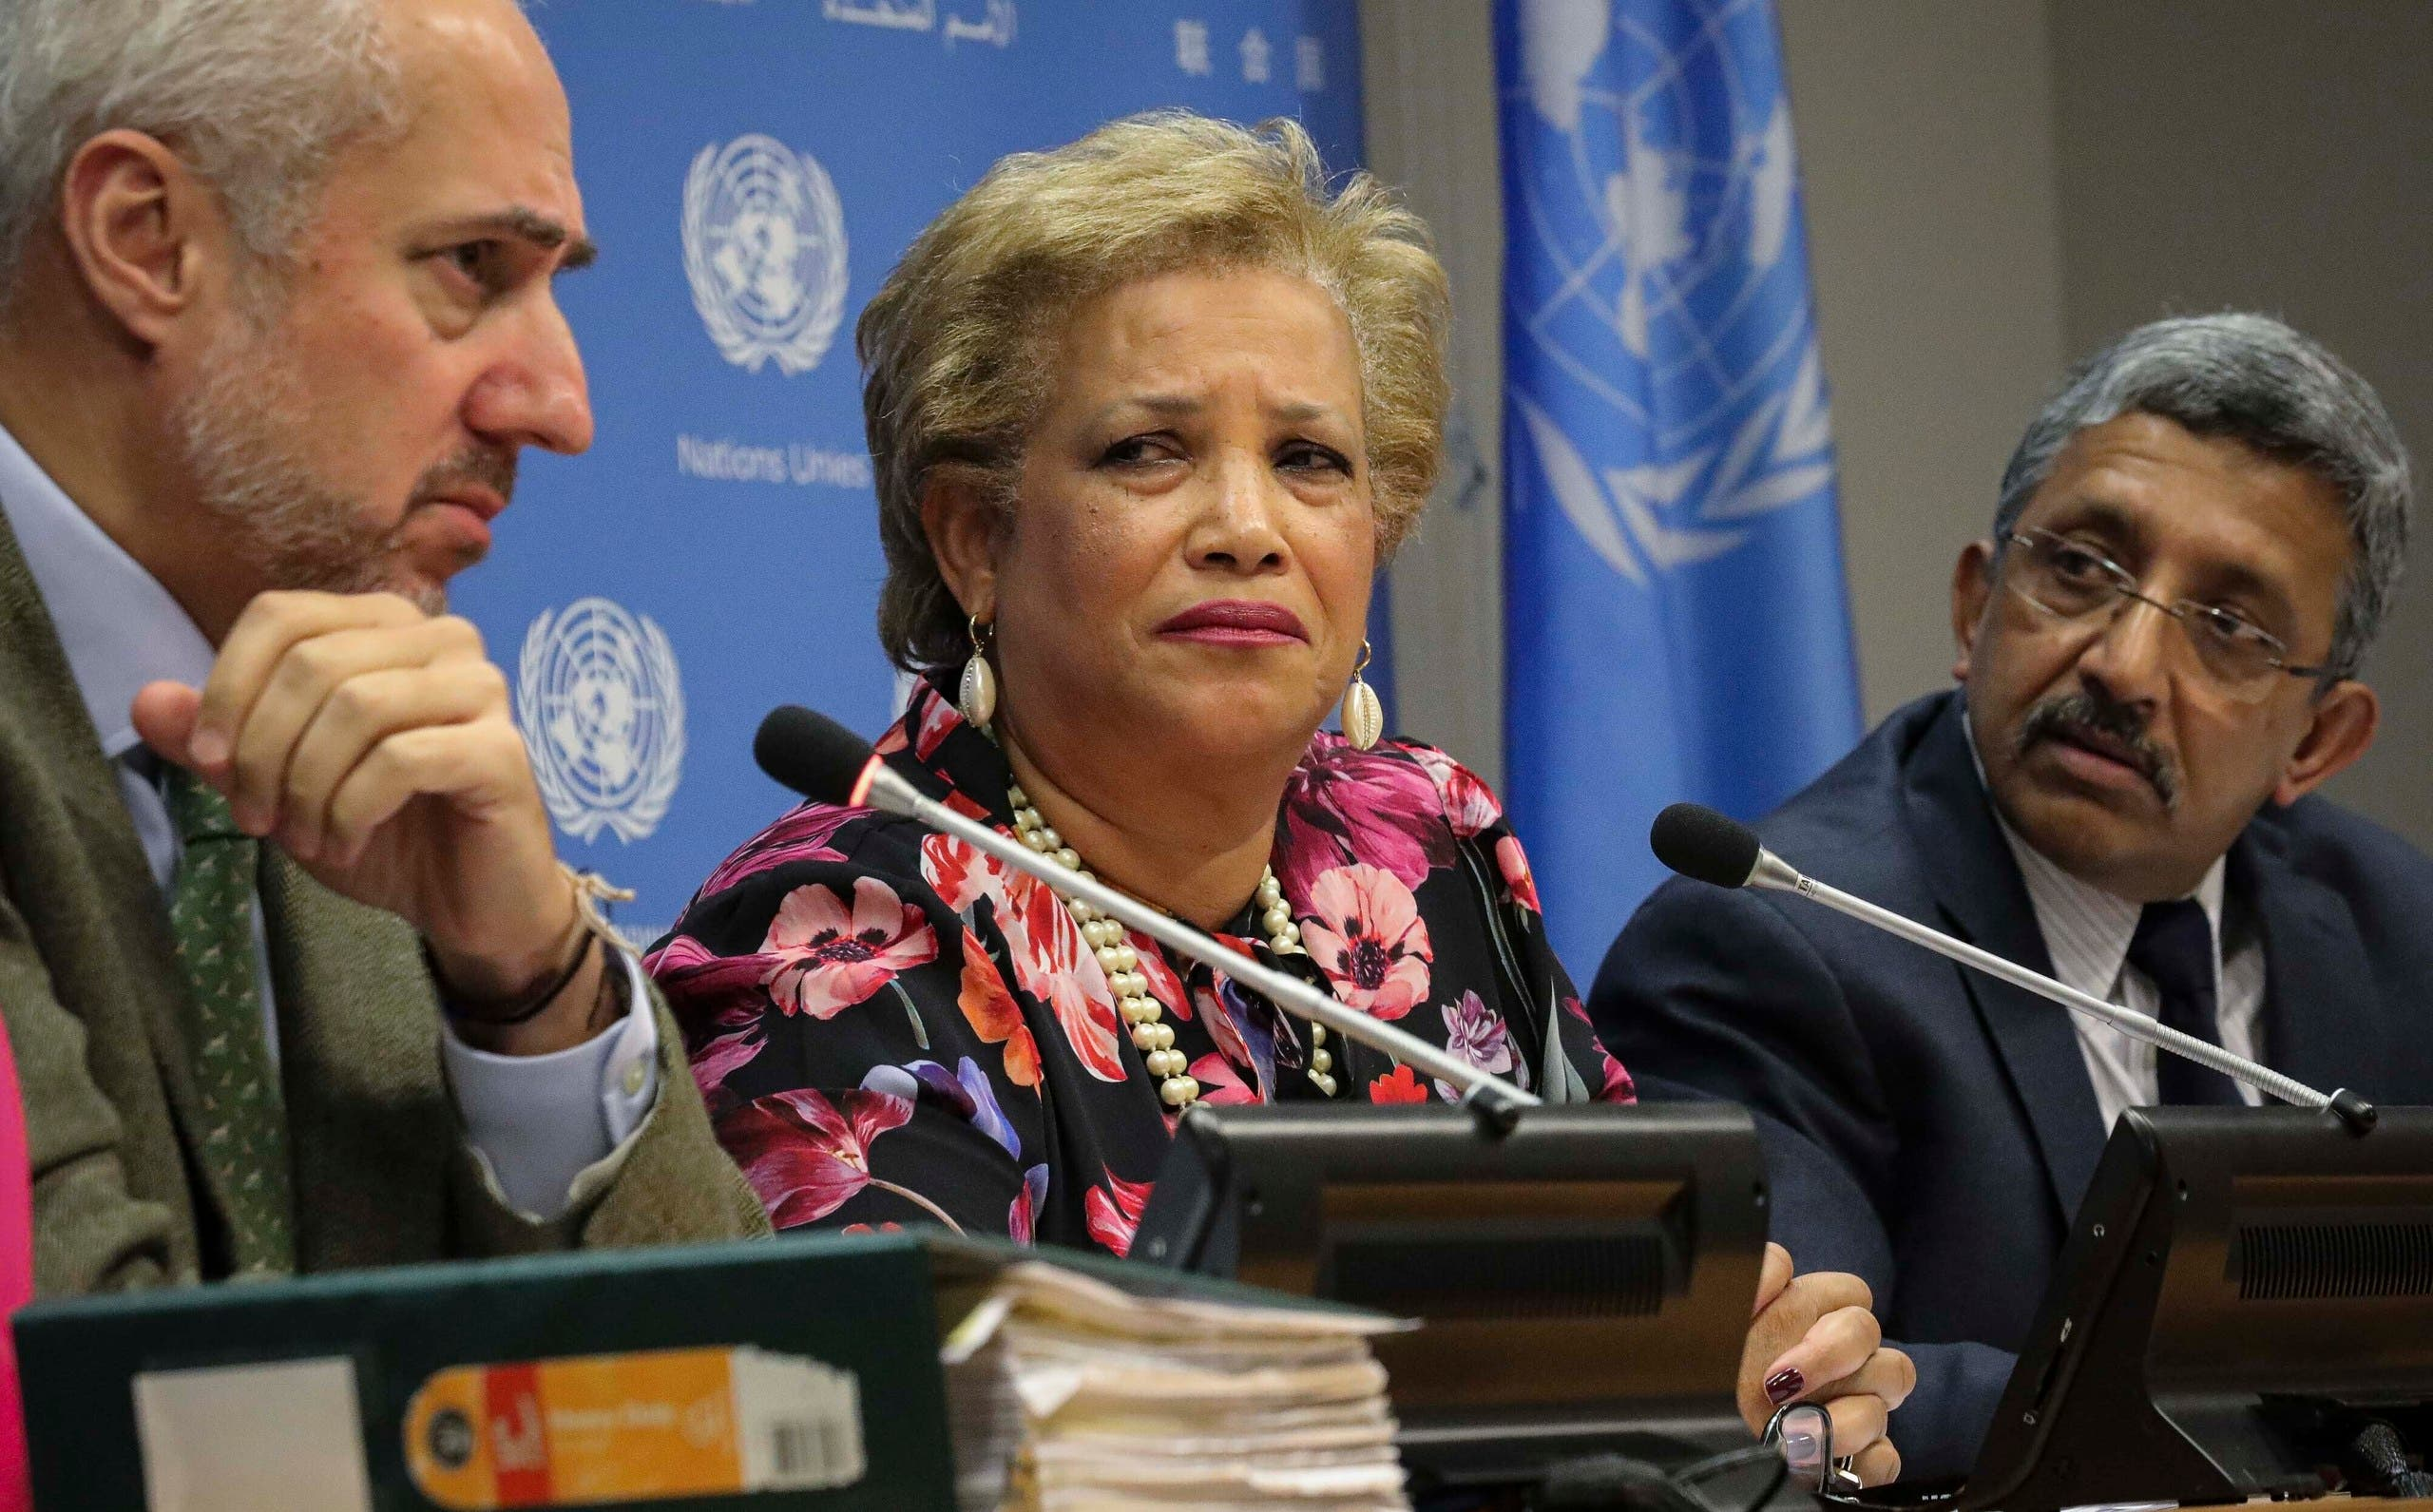 File photo of United Nations spokesman Stephane Dujarric, (left), with other UN officials at the UN headquarters. (AP)